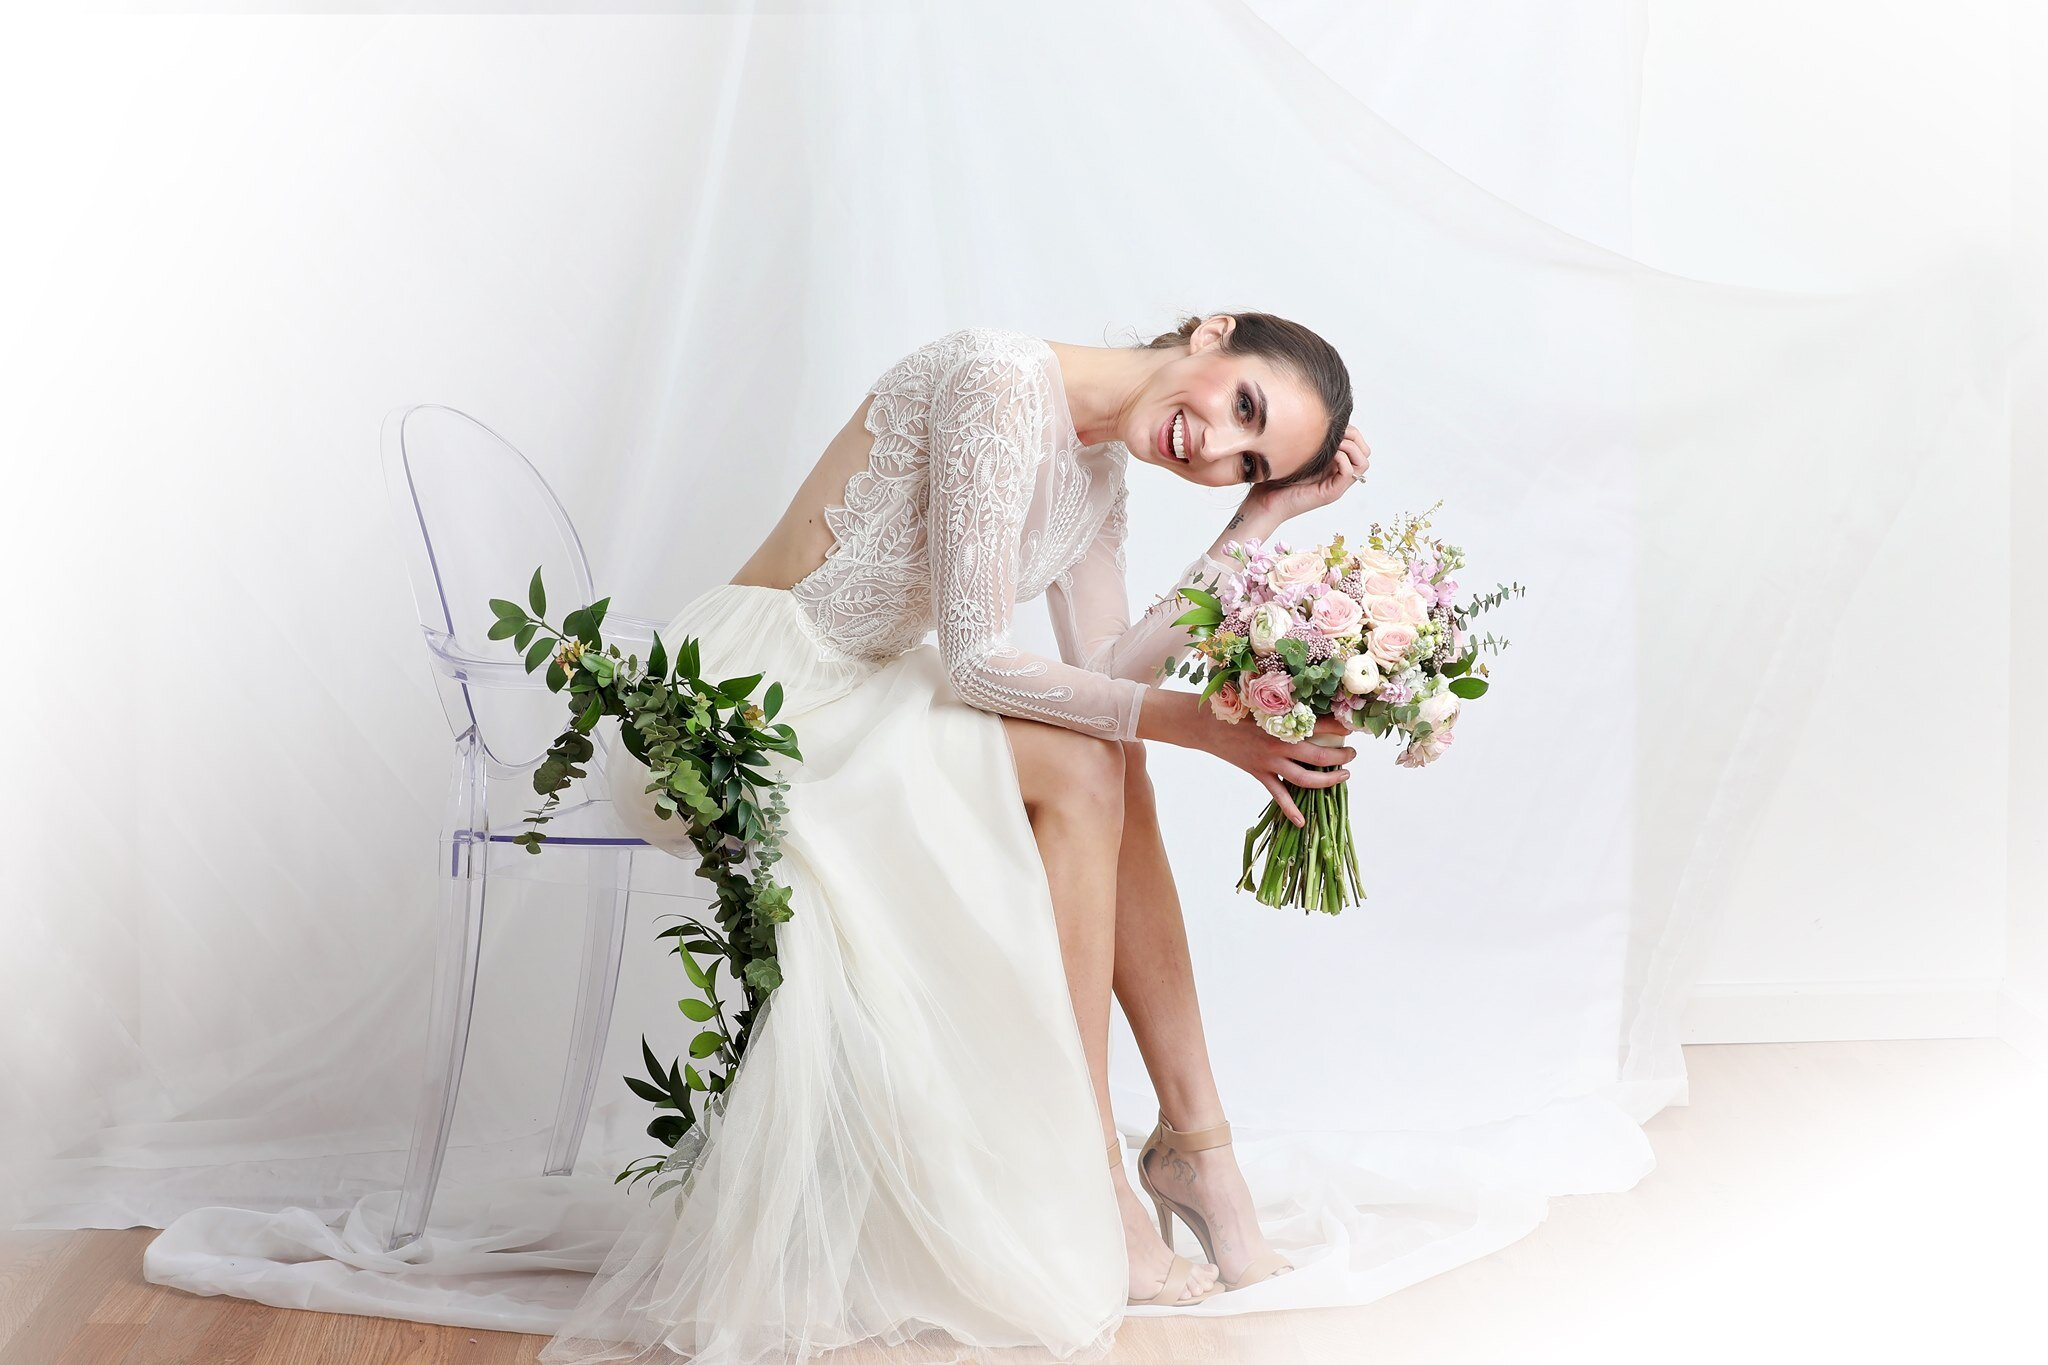 Wedding Gowns Krustallos Couture